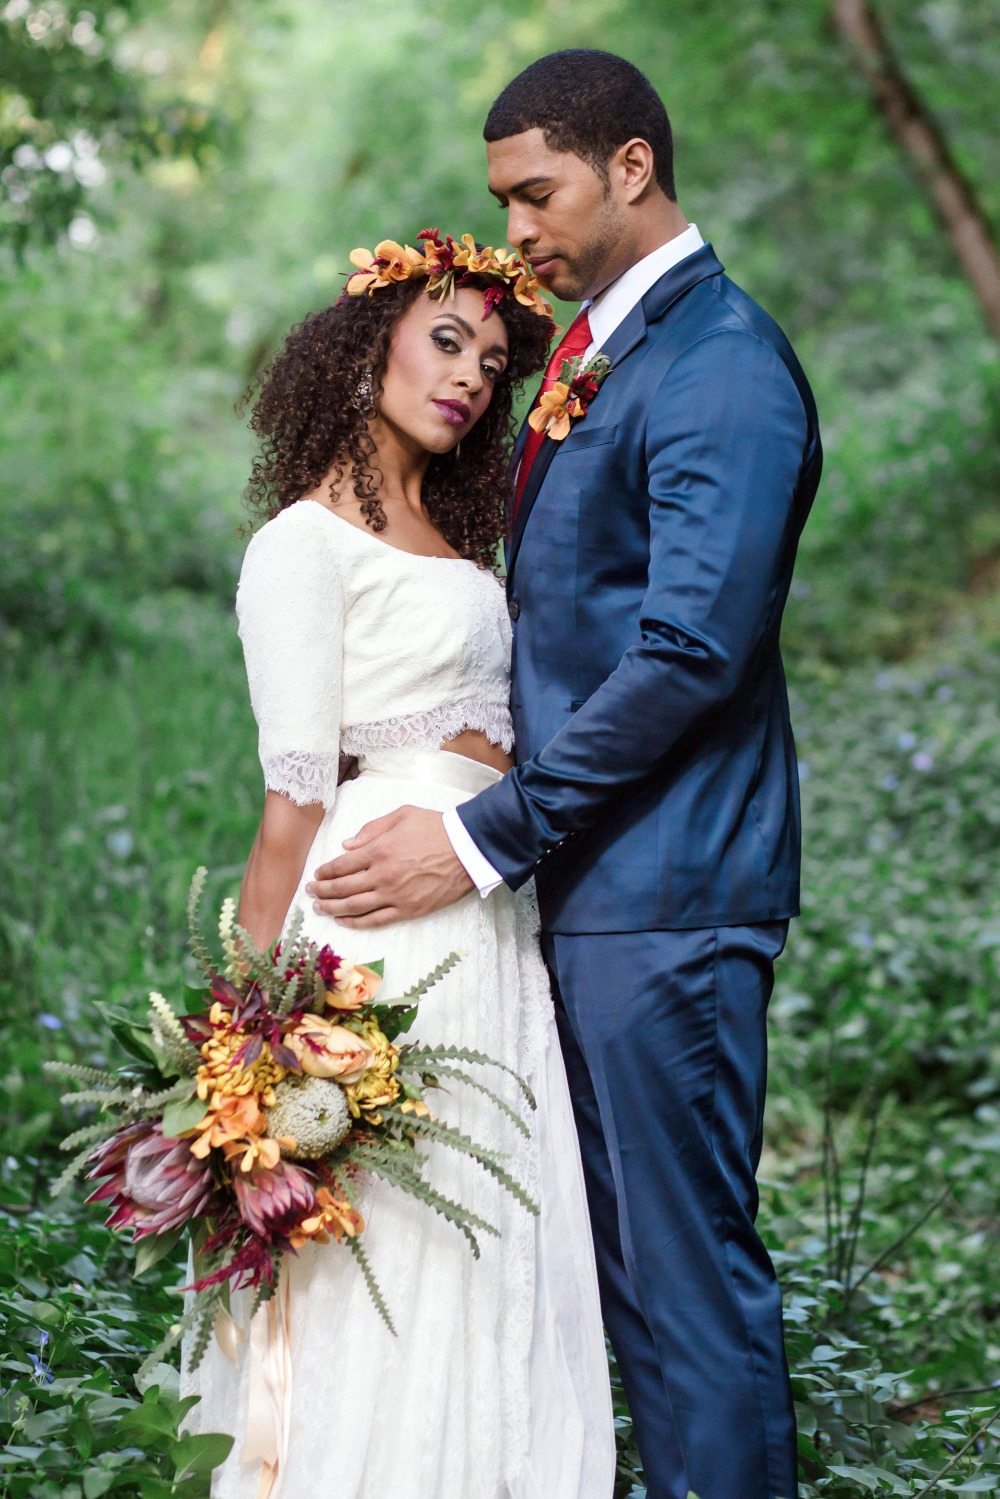 Eclectic boho wedding ideas